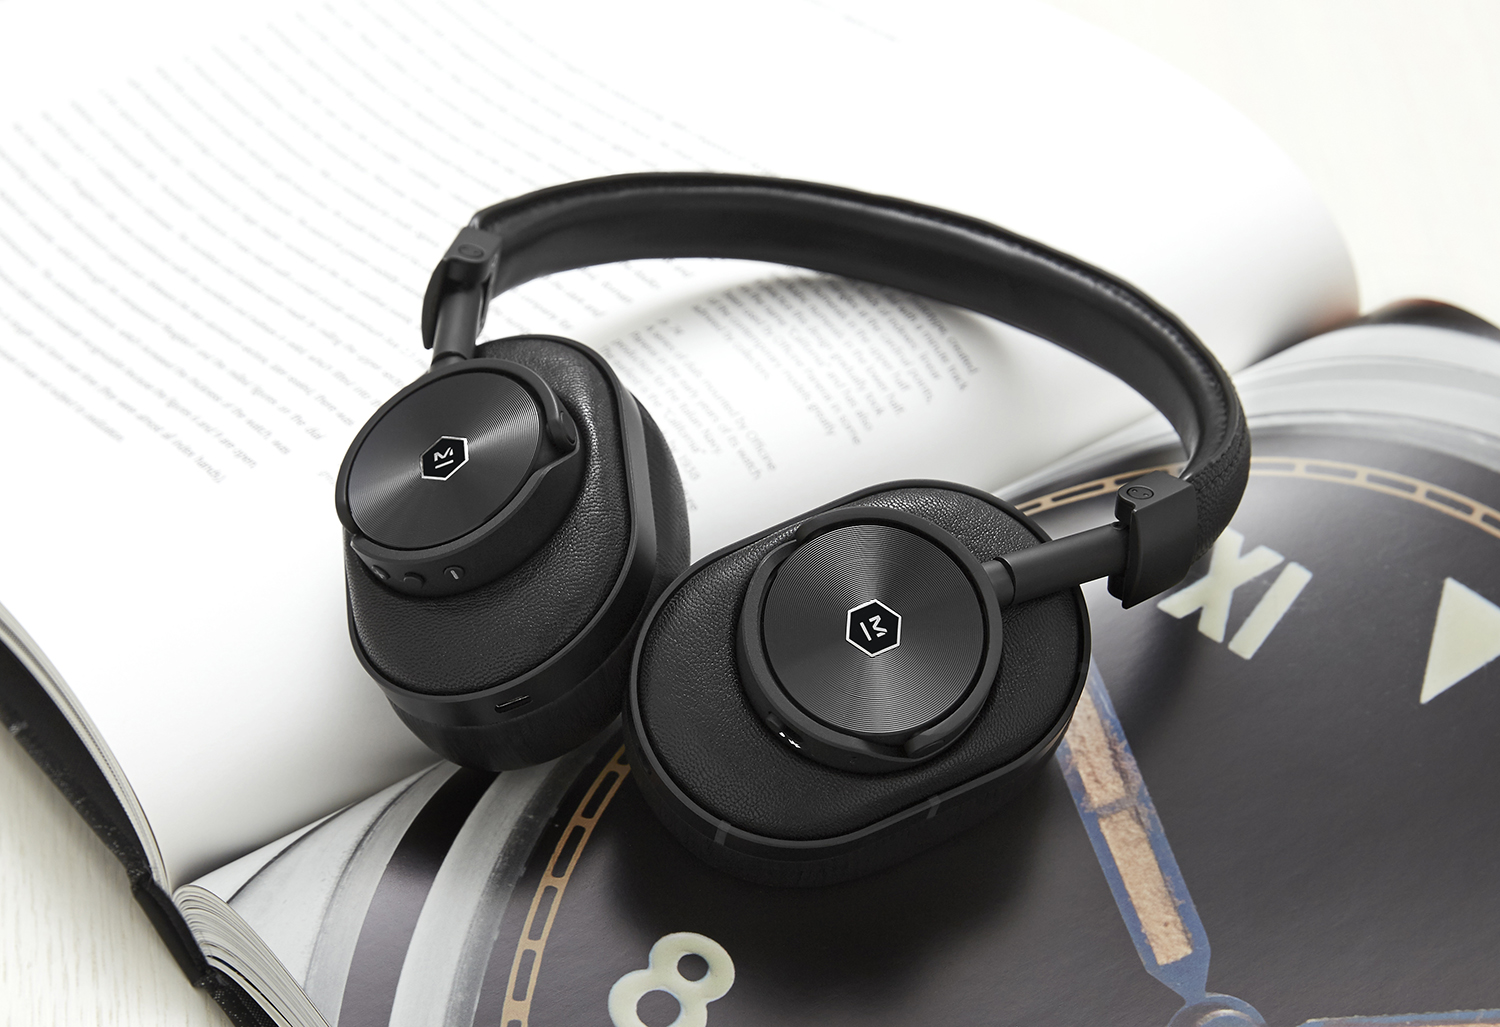 a1f3fa5d1cd New Black-on-Black Colorway for the MW60 Wireless Over-Ear Headphones